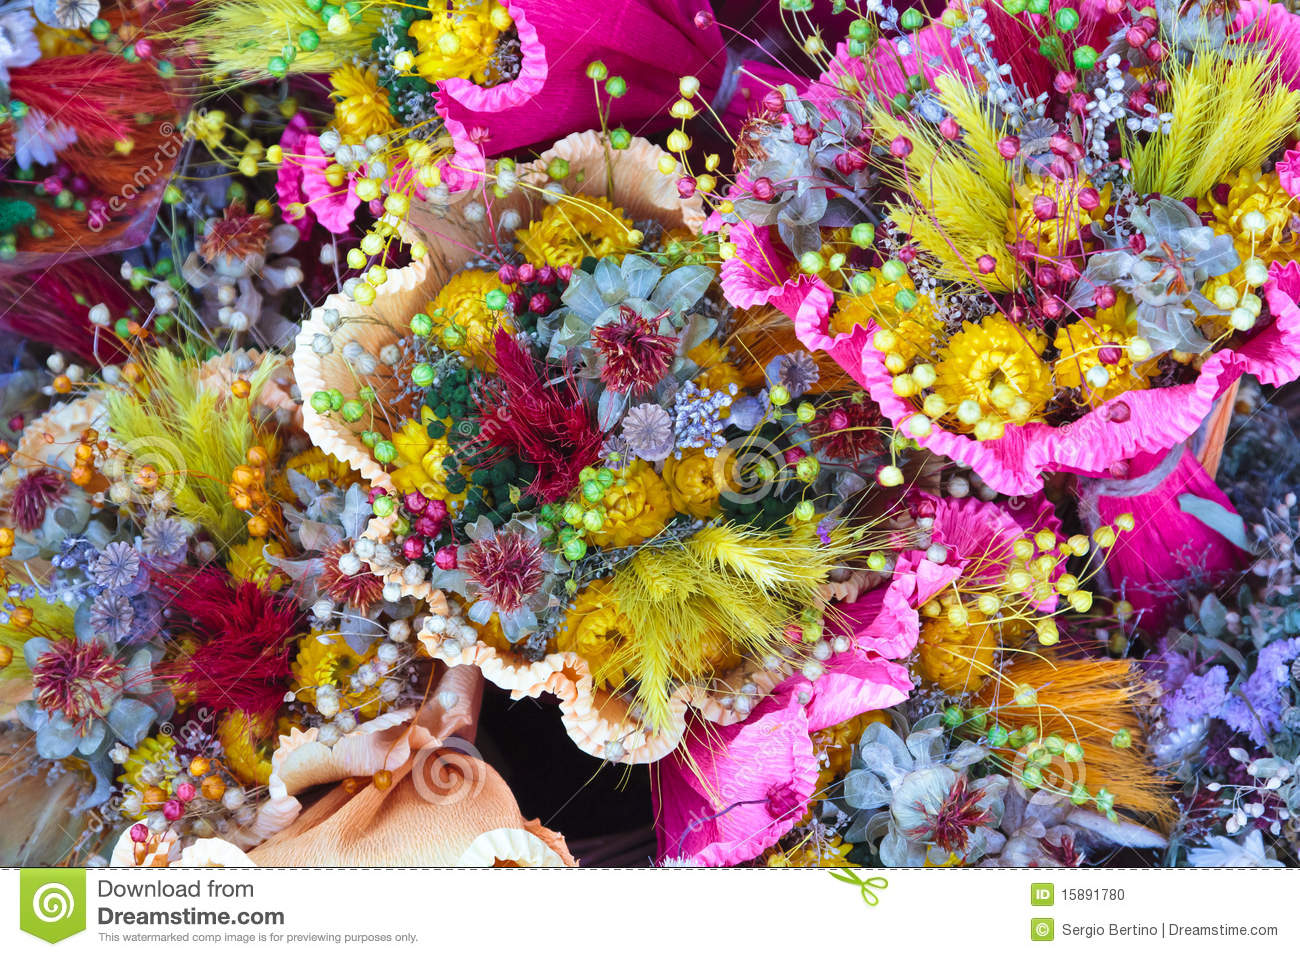 Bouquets of flowers stock photo. Image of colored, bright - 15891780